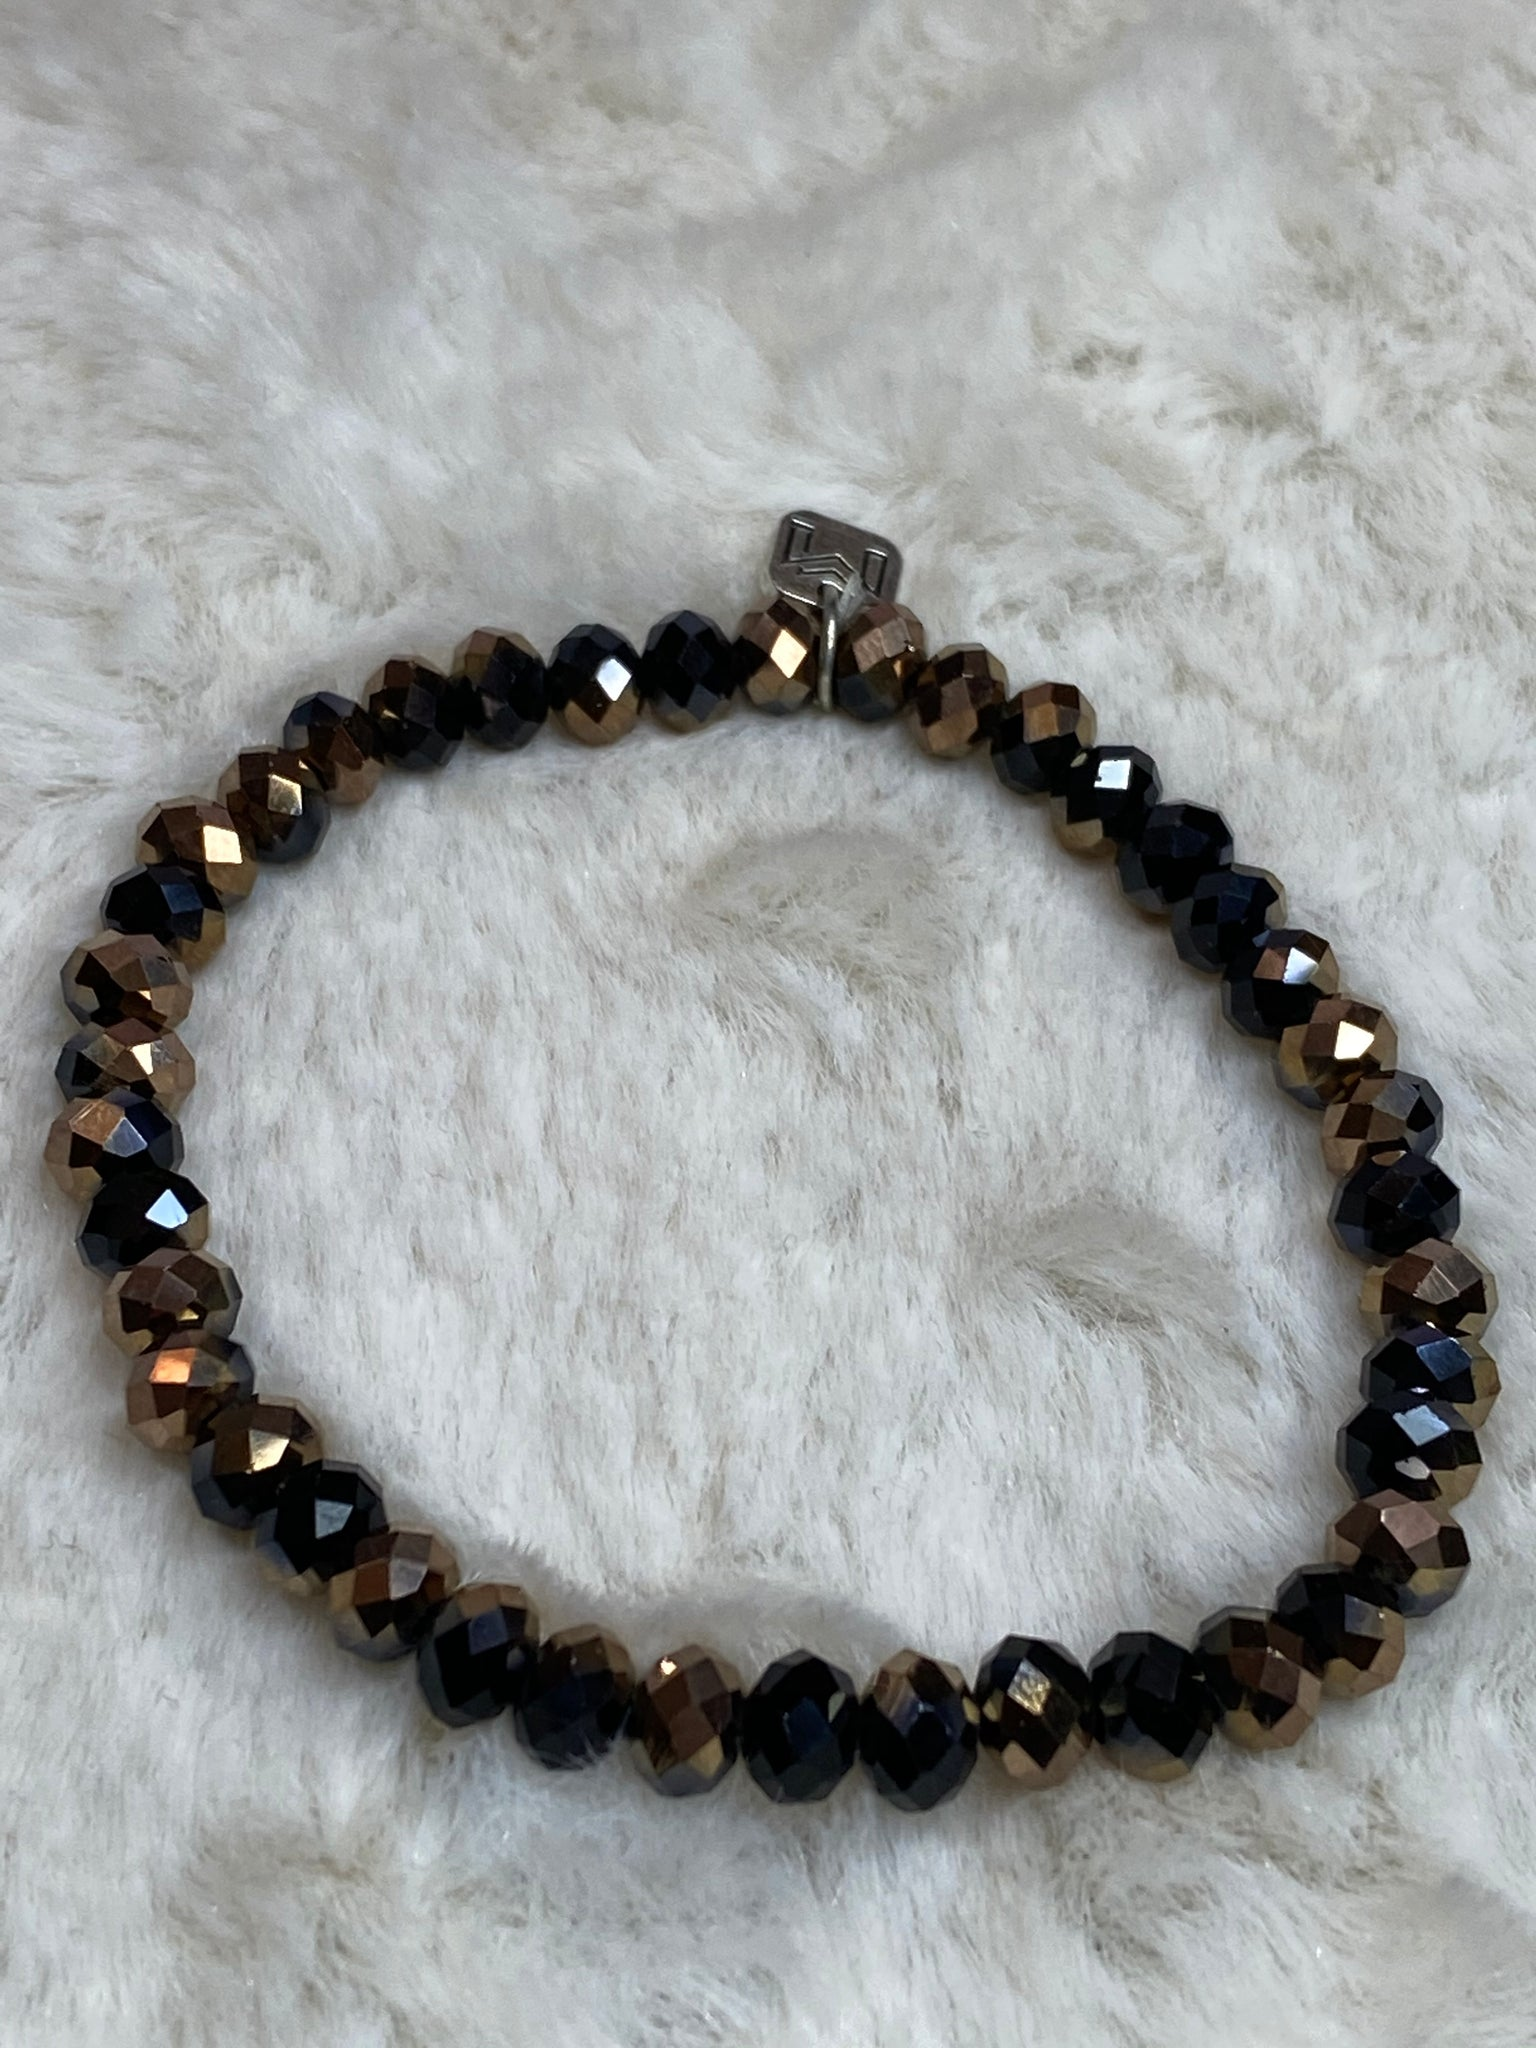 Mix Mercantile Bracelet - Black and Brown 6mm Bead